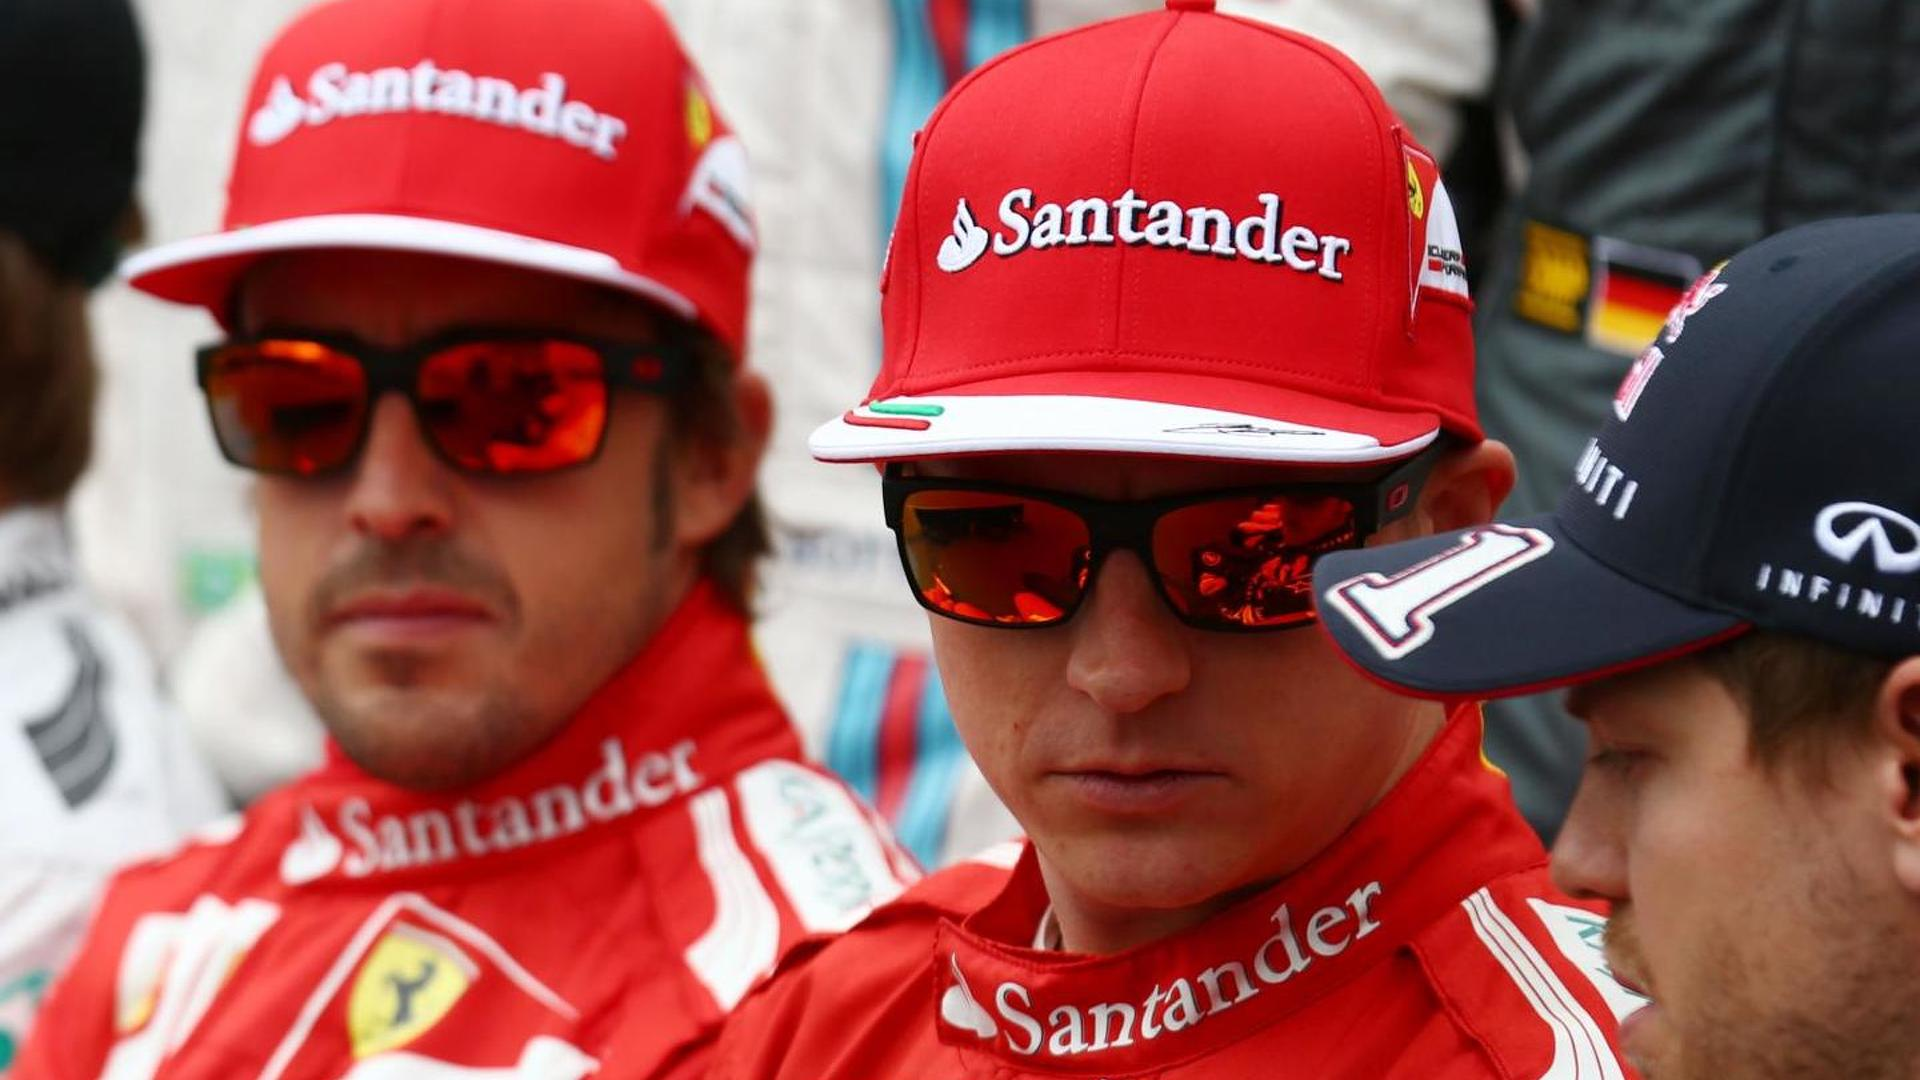 Alonso and Raikkonen are staying - Marchionne